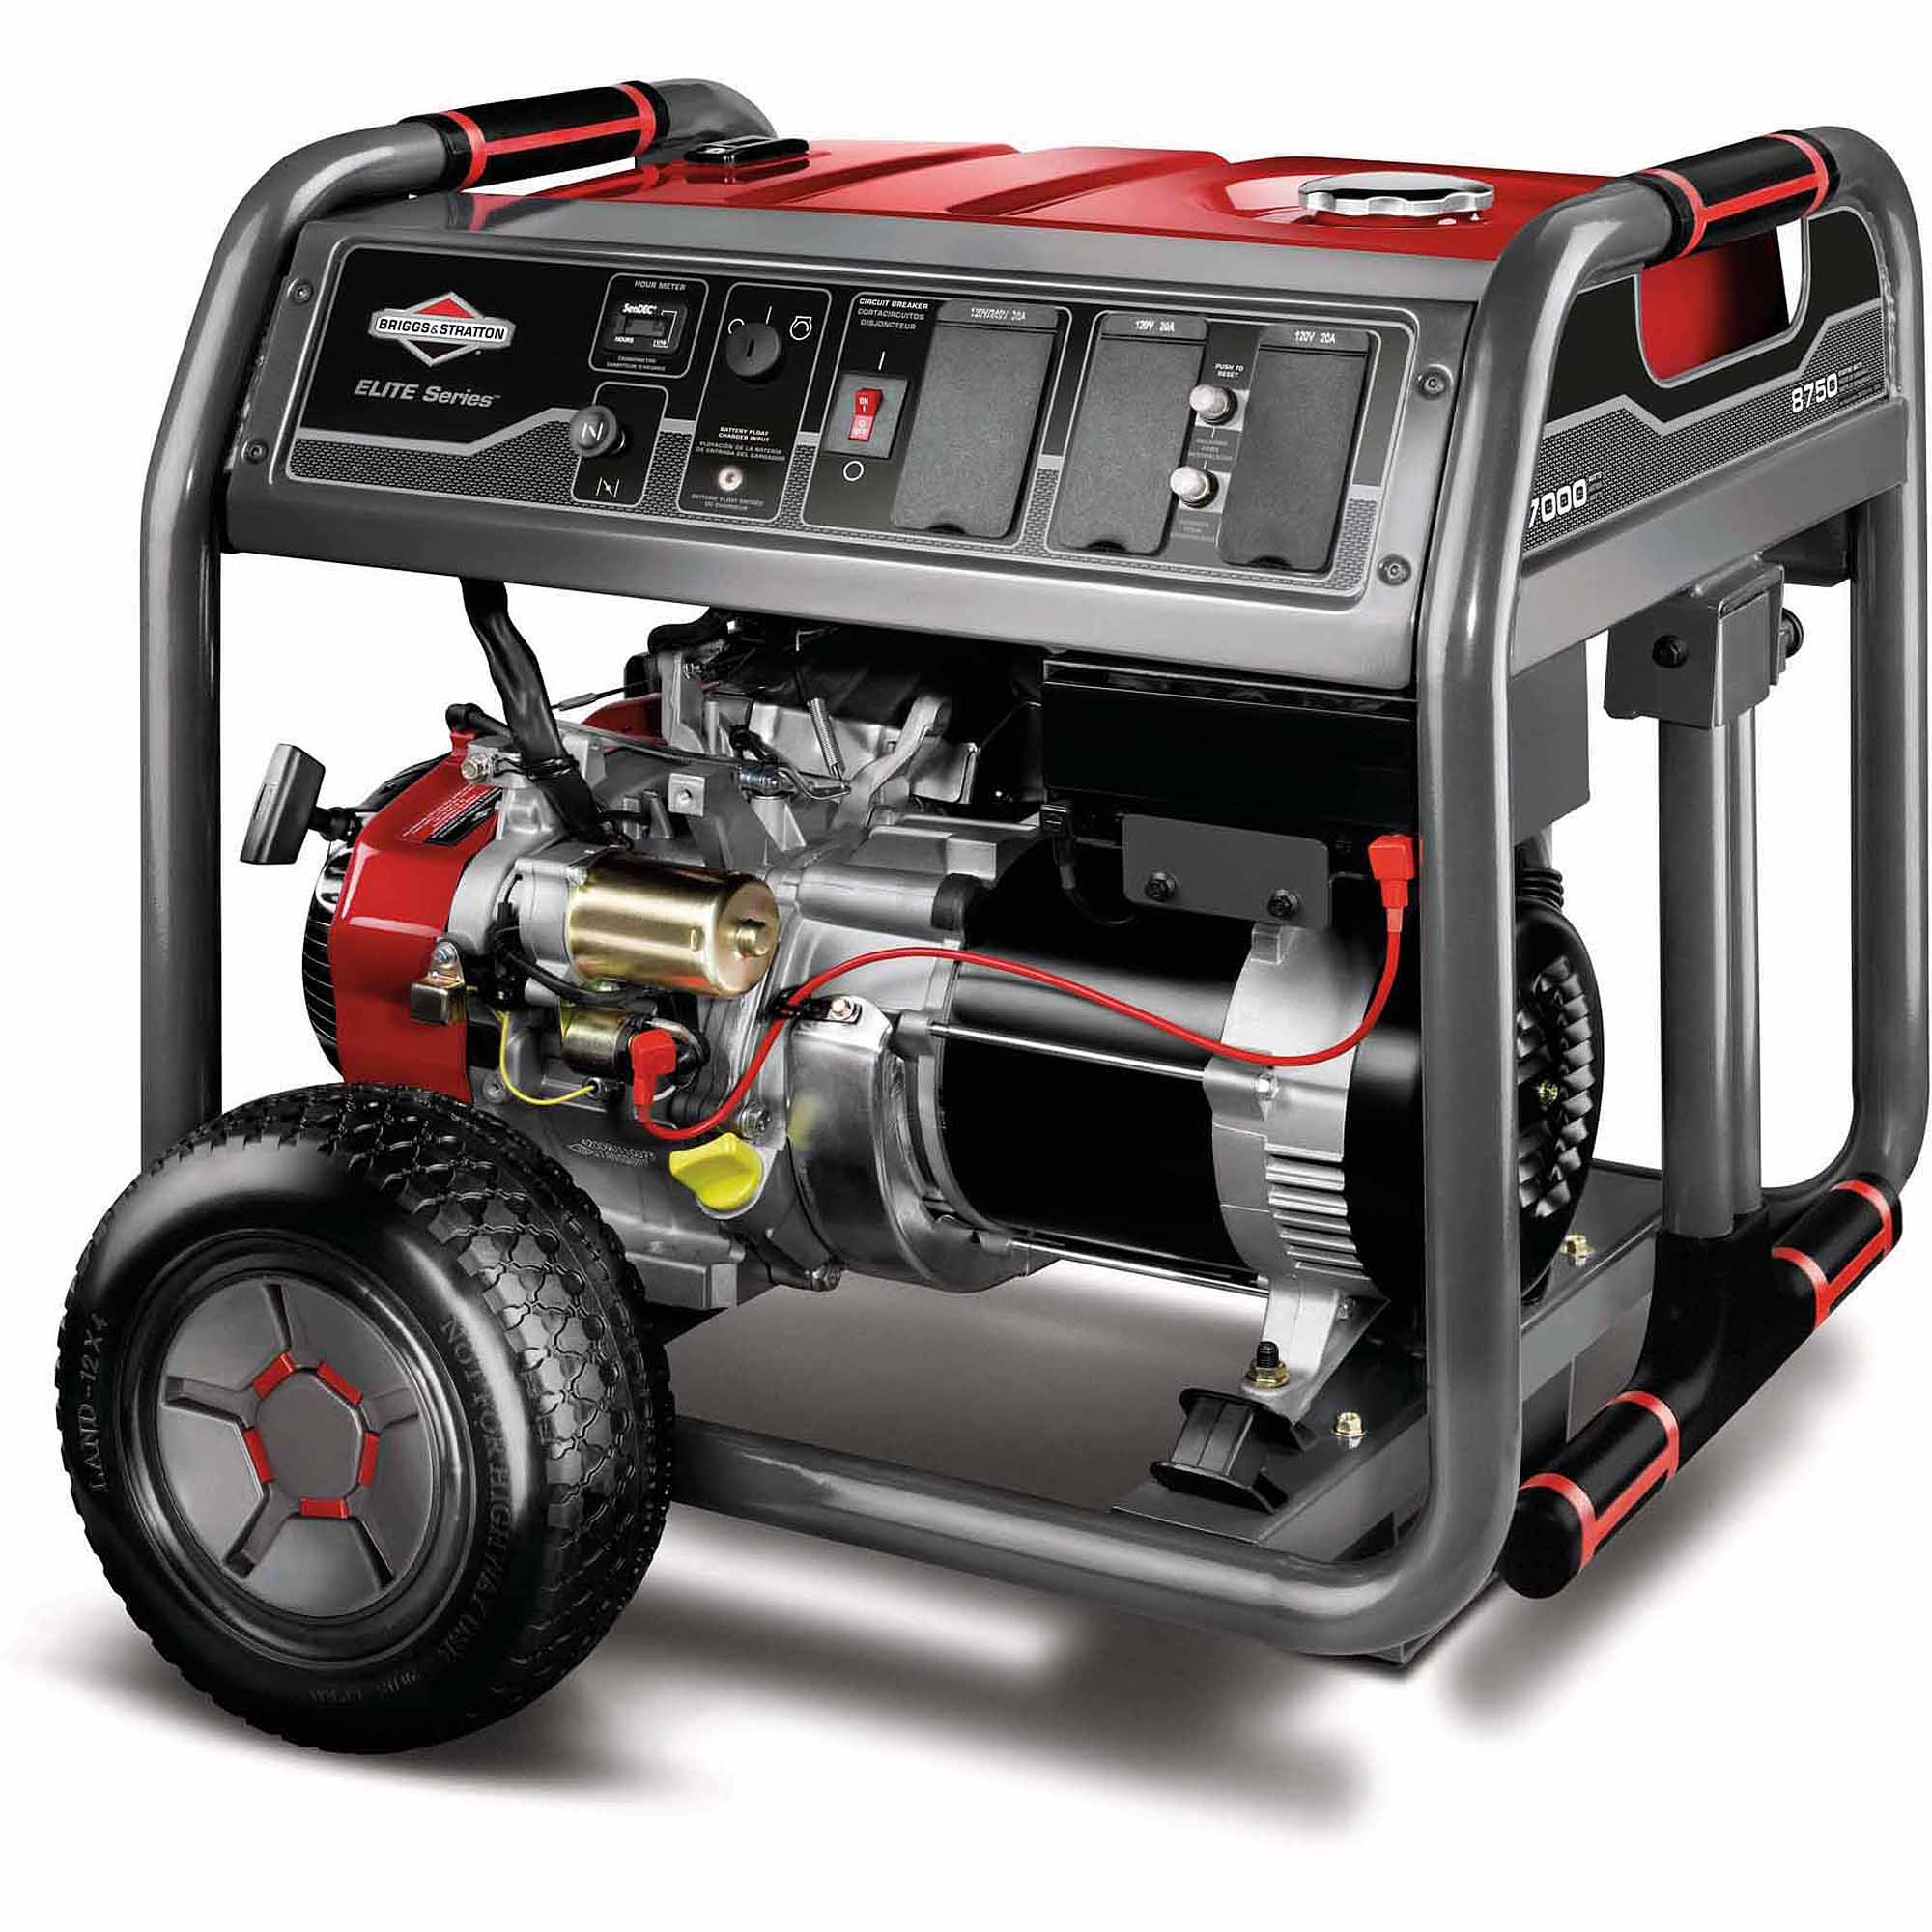 Briggs & Stratton 7000-Watt Gas Powered Portable Generato...